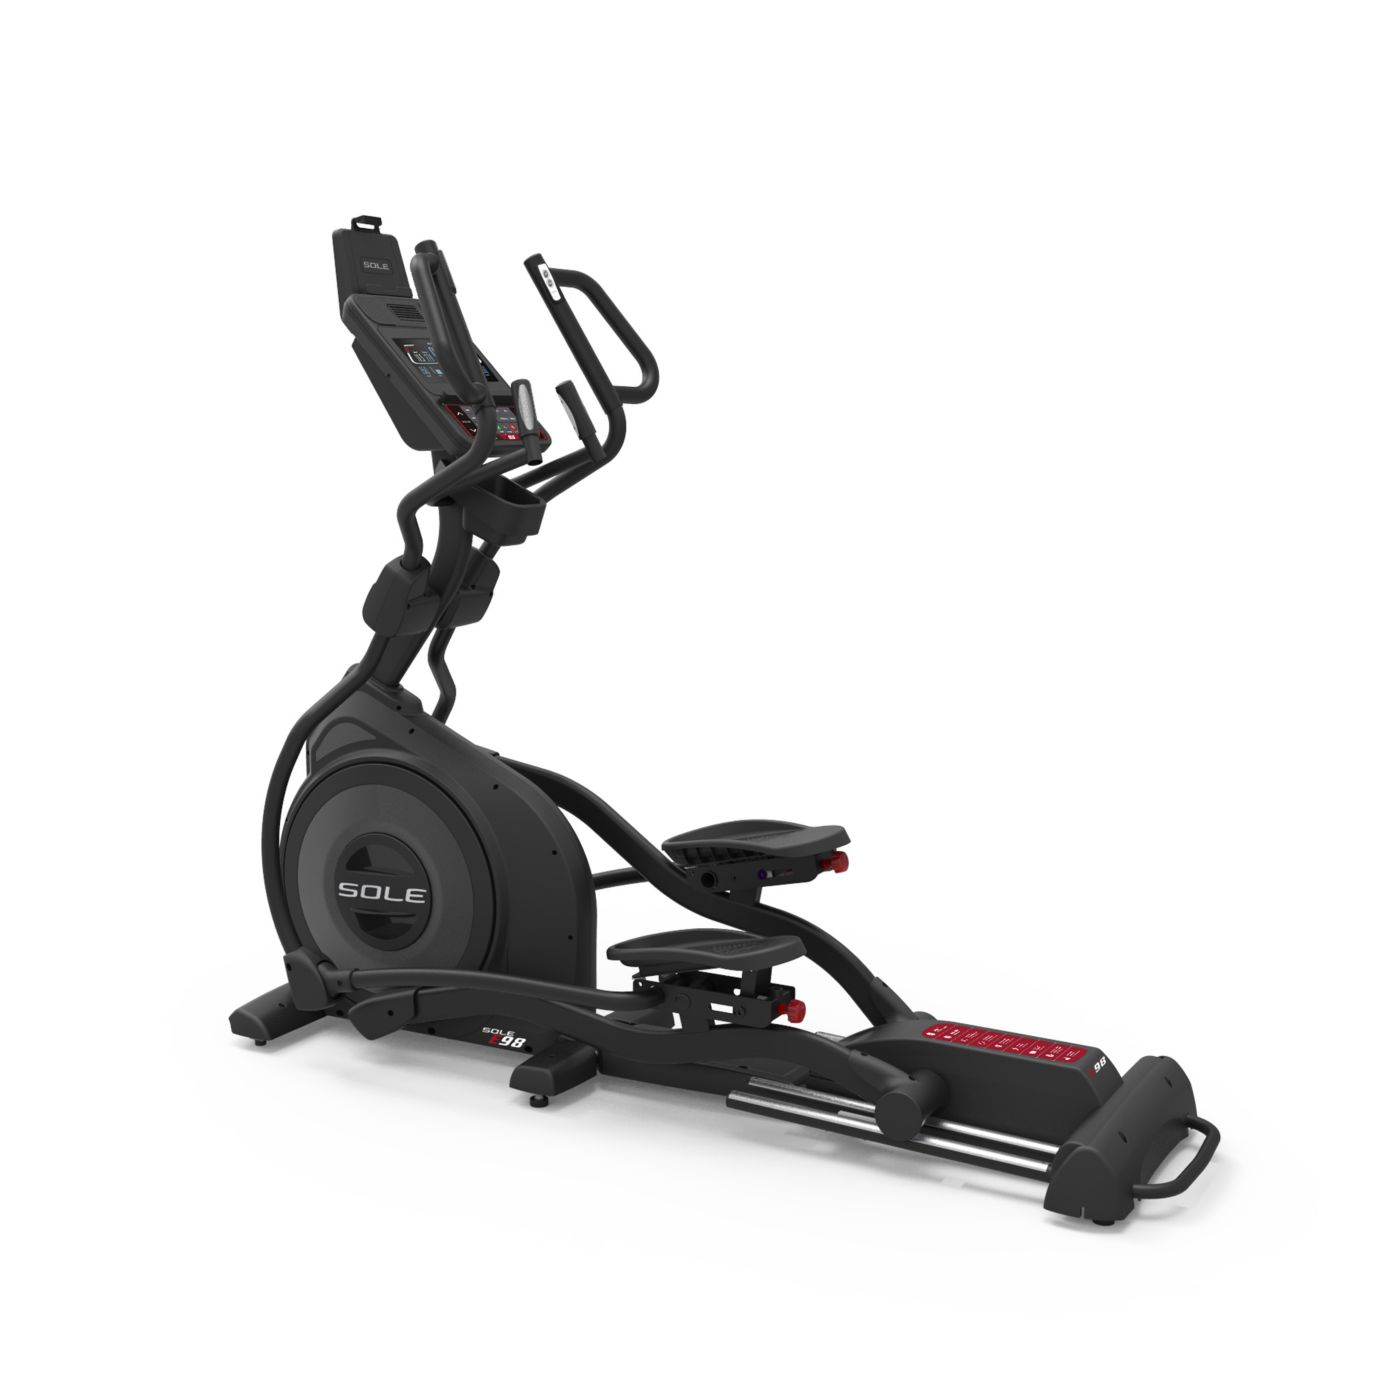 Sole E98 Light Commercial Elliptical